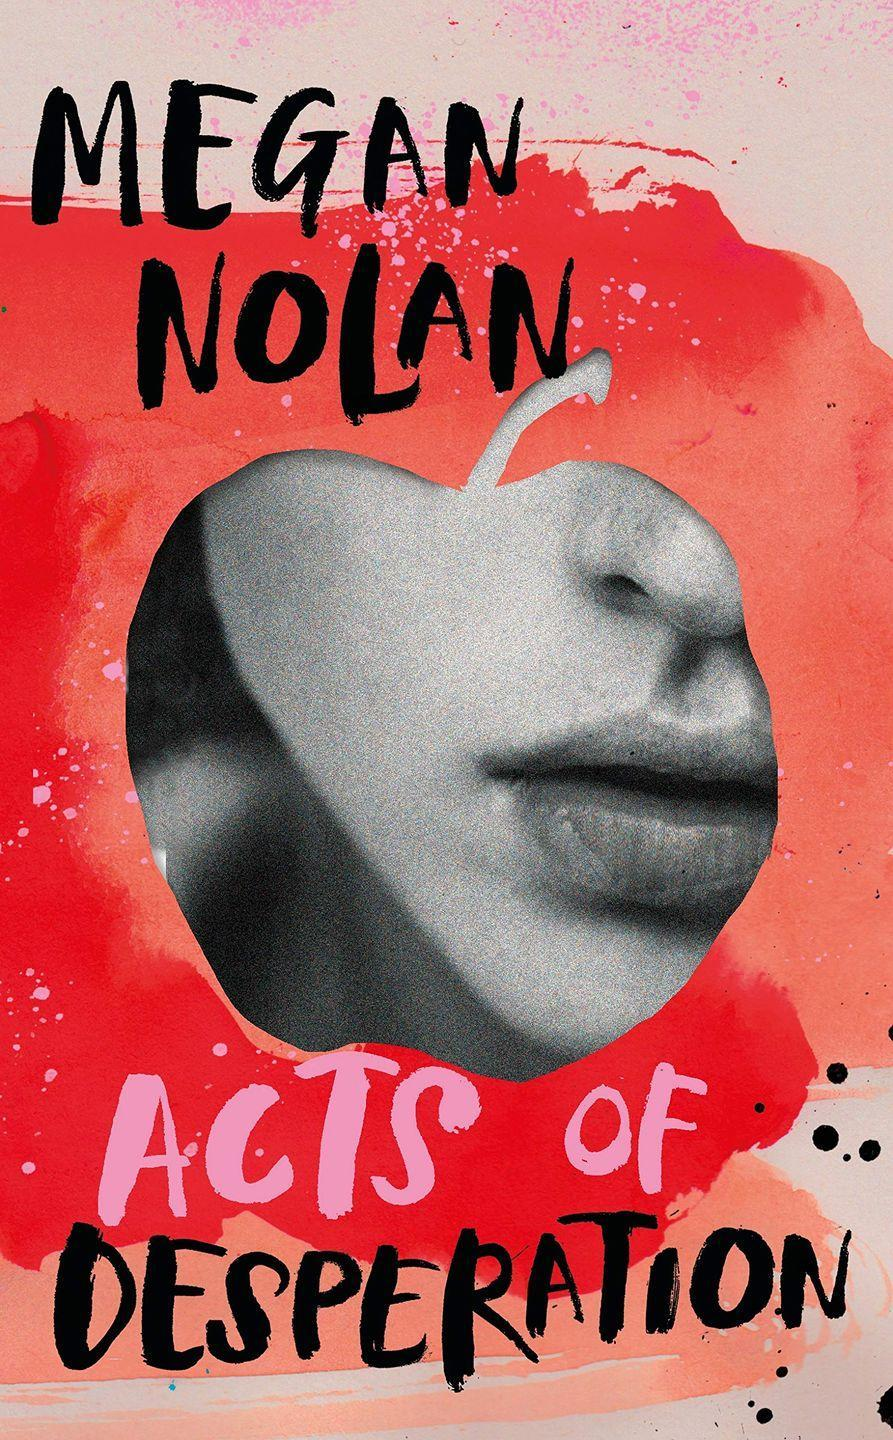 """<p>The debut novel of Irish journalist Nolan, Acts of Desperation is already causing shockwaves. A compelling tale of frantic, obsessive love, it charts the ecstasy of infatuation of one woman's relationship and the dark twisted comedown she feels of self-doubt and anxiety.</p><p><a class=""""link rapid-noclick-resp"""" href=""""https://www.amazon.co.uk/Acts-Desperation-Megan-Nolan/dp/1787332497/ref=sr_1_1?dchild=1&keywords=Acts+of+Desperation%2C+Megan+Nolan&qid=1616007144&sr=8-1&tag=hearstuk-yahoo-21&ascsubtag=%5Bartid%7C1927.g.35865085%5Bsrc%7Cyahoo-uk"""" rel=""""nofollow noopener"""" target=""""_blank"""" data-ylk=""""slk:SHOP NOW"""">SHOP NOW</a></p>"""